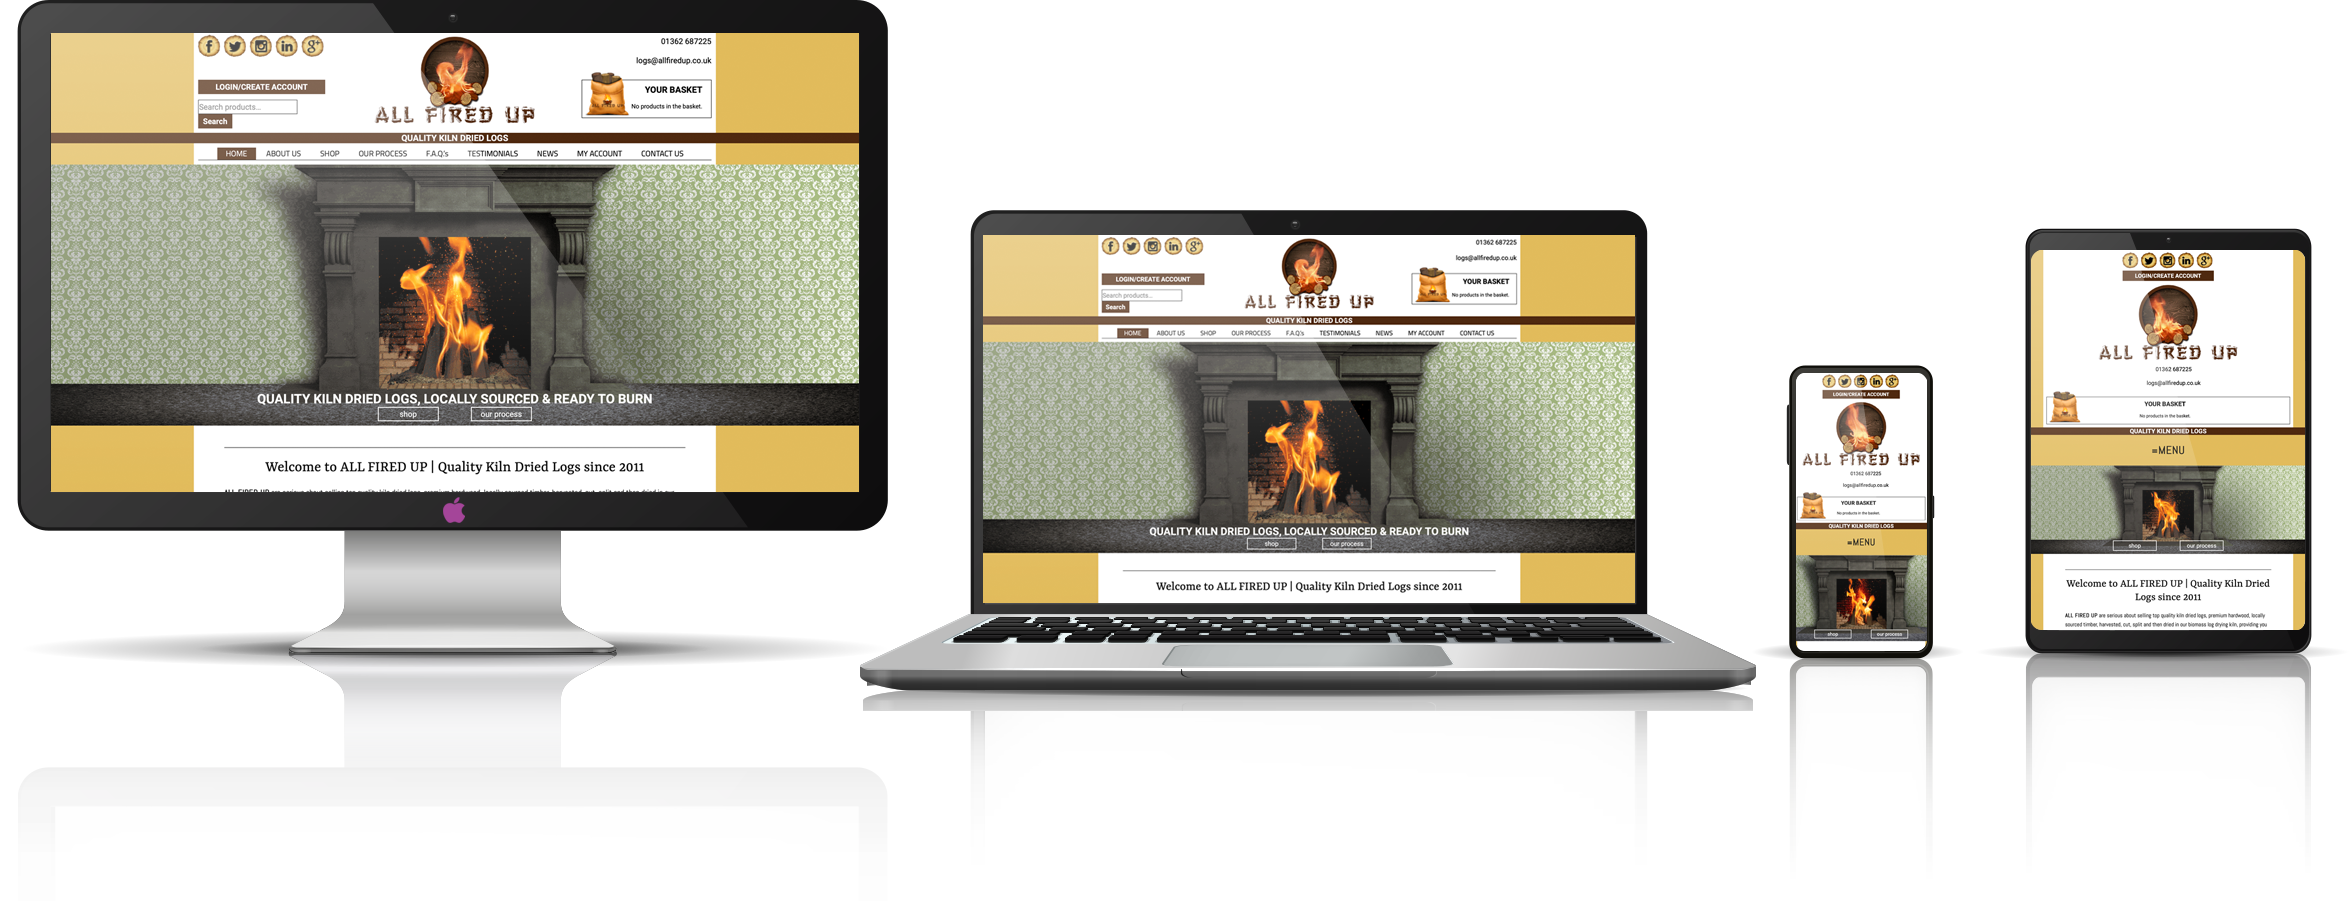 The All Fired Up fully responsive mock-up images showing desktop, laptop, tablet, and mobile phone devices.